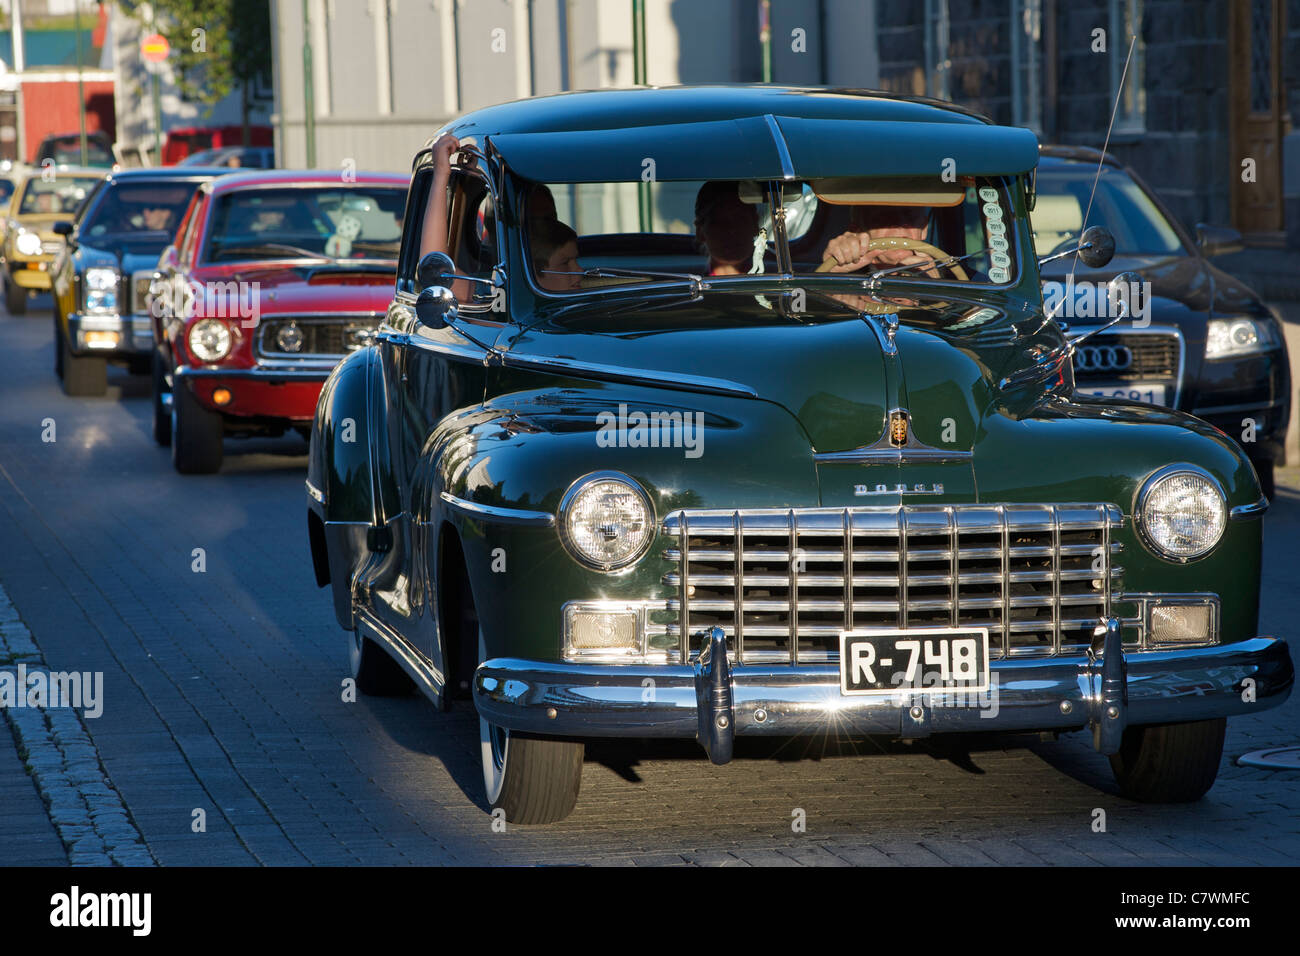 Dodge and other vintage cars driving through central Reykjavik, the capital of Iceland. - Stock Image